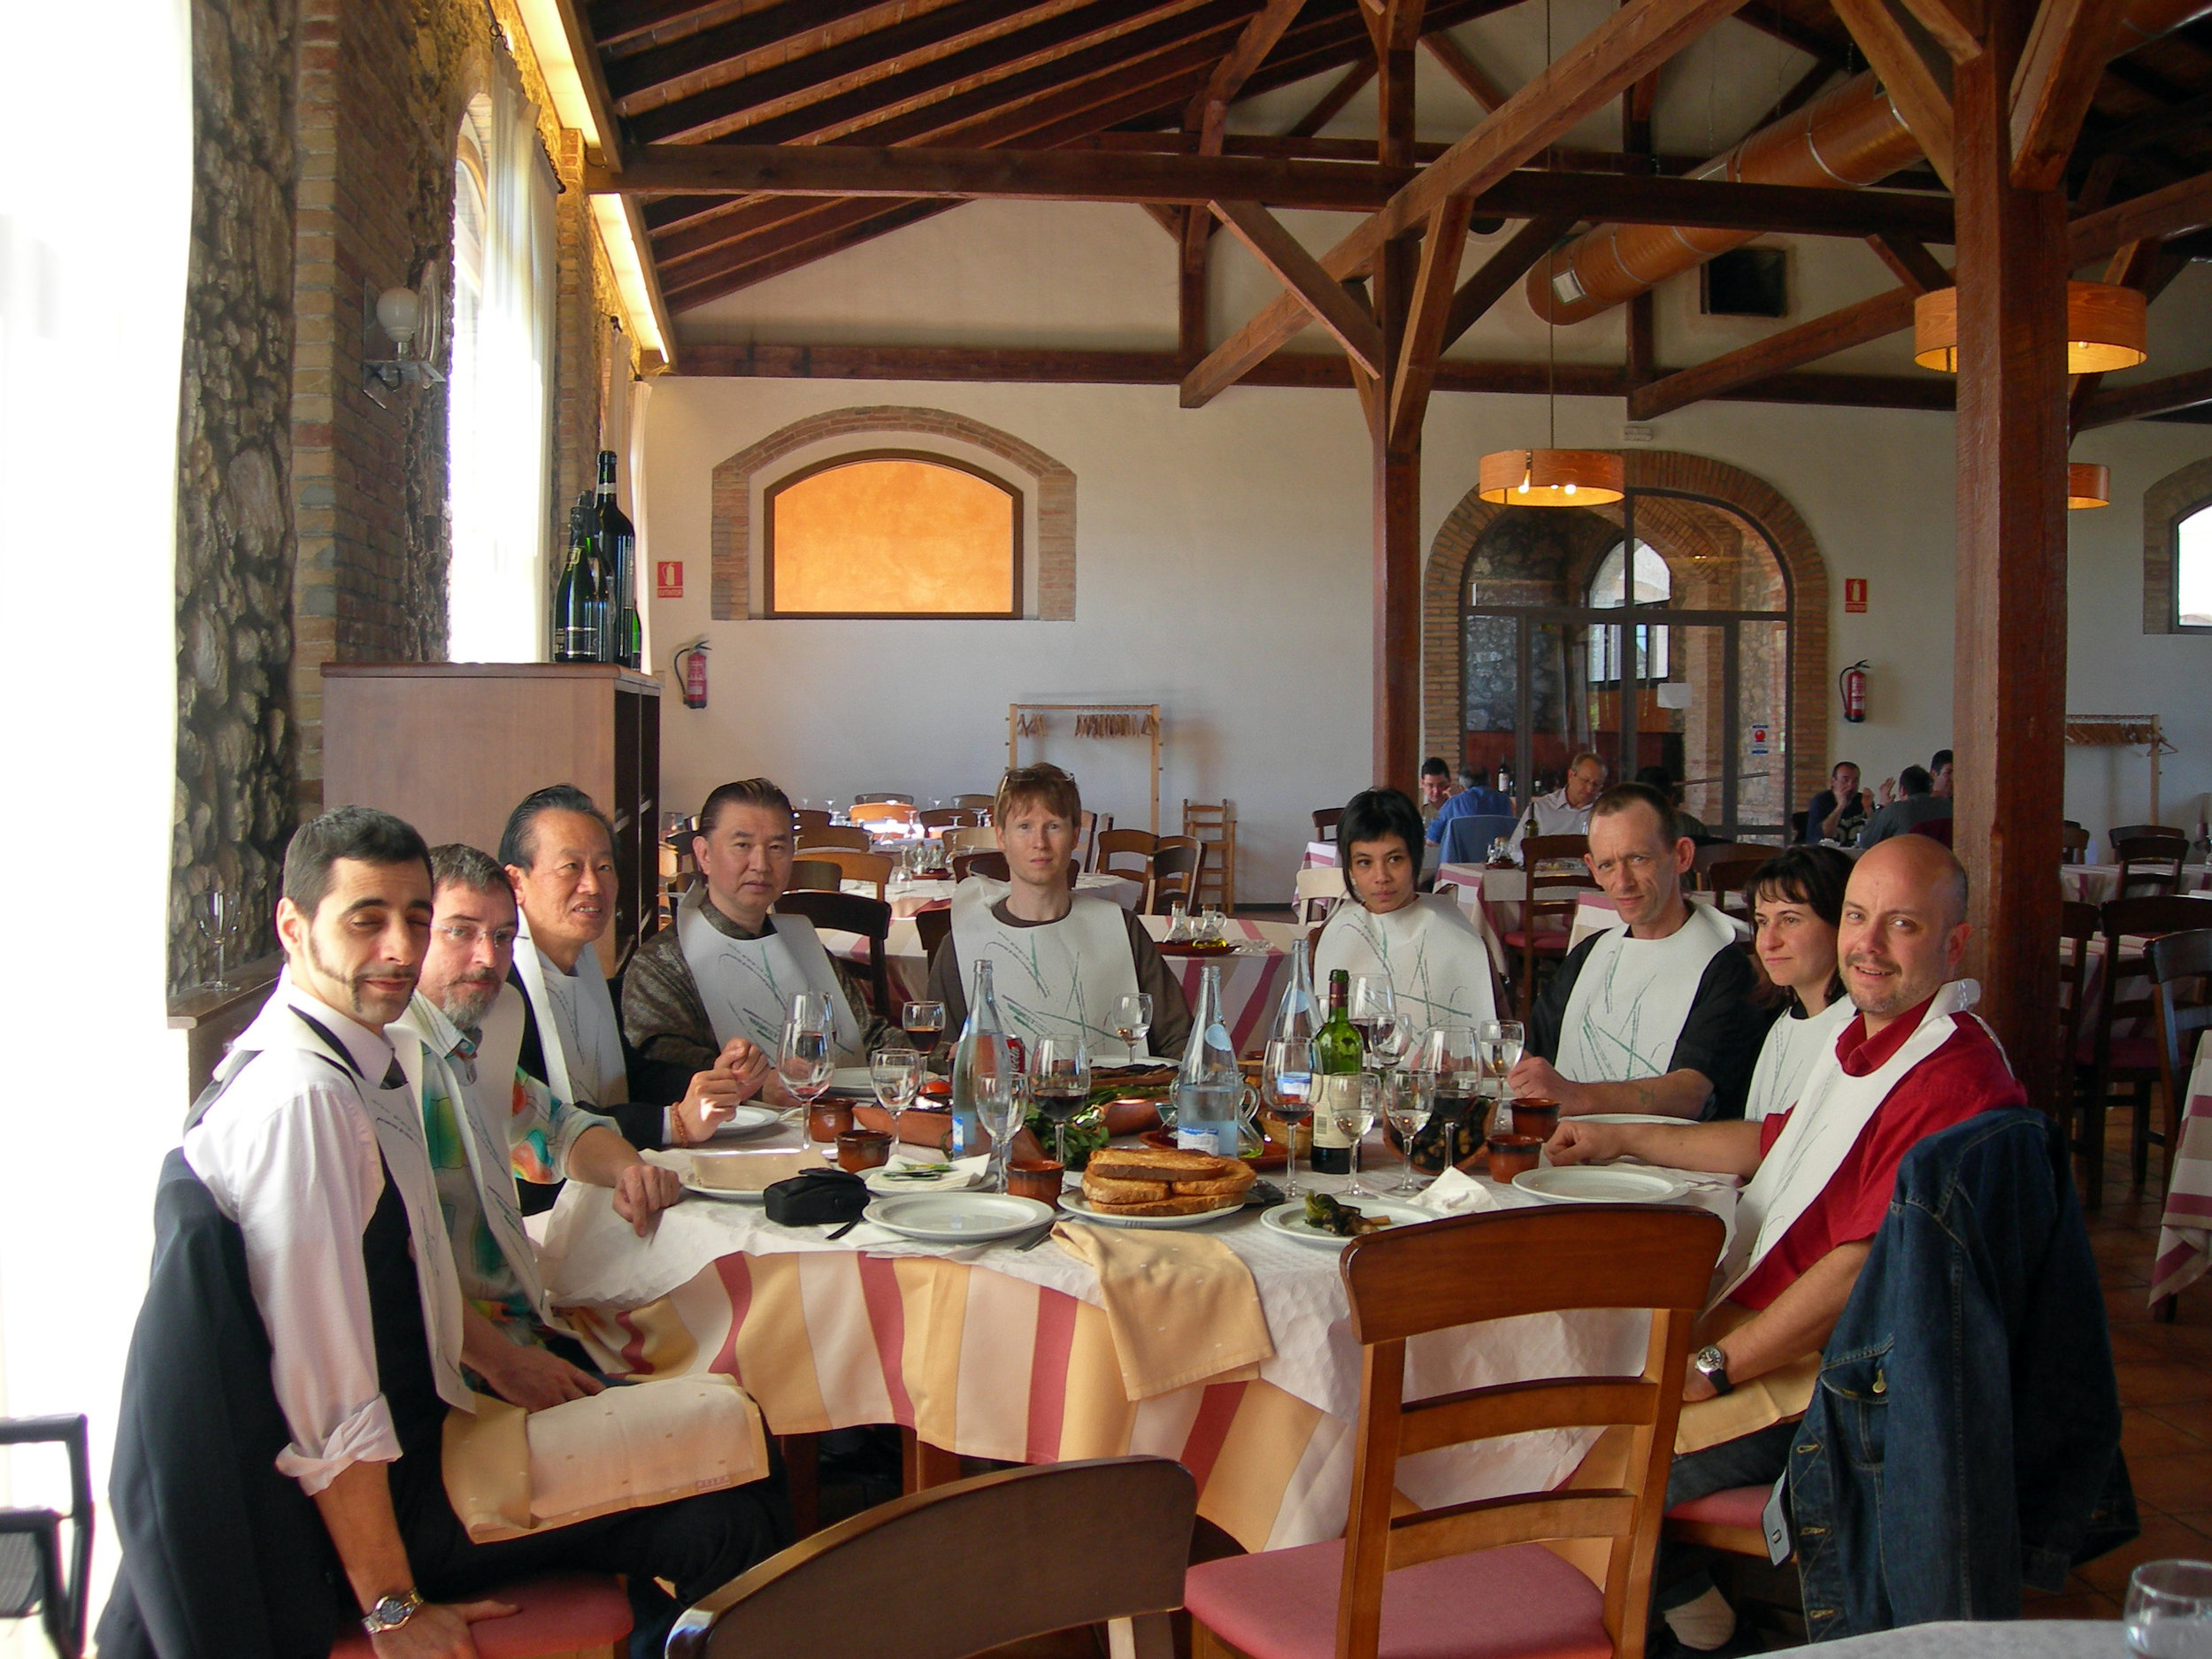 Eating in Spain with doc fai wong niel willcott spain seminars choy li fut.jpg